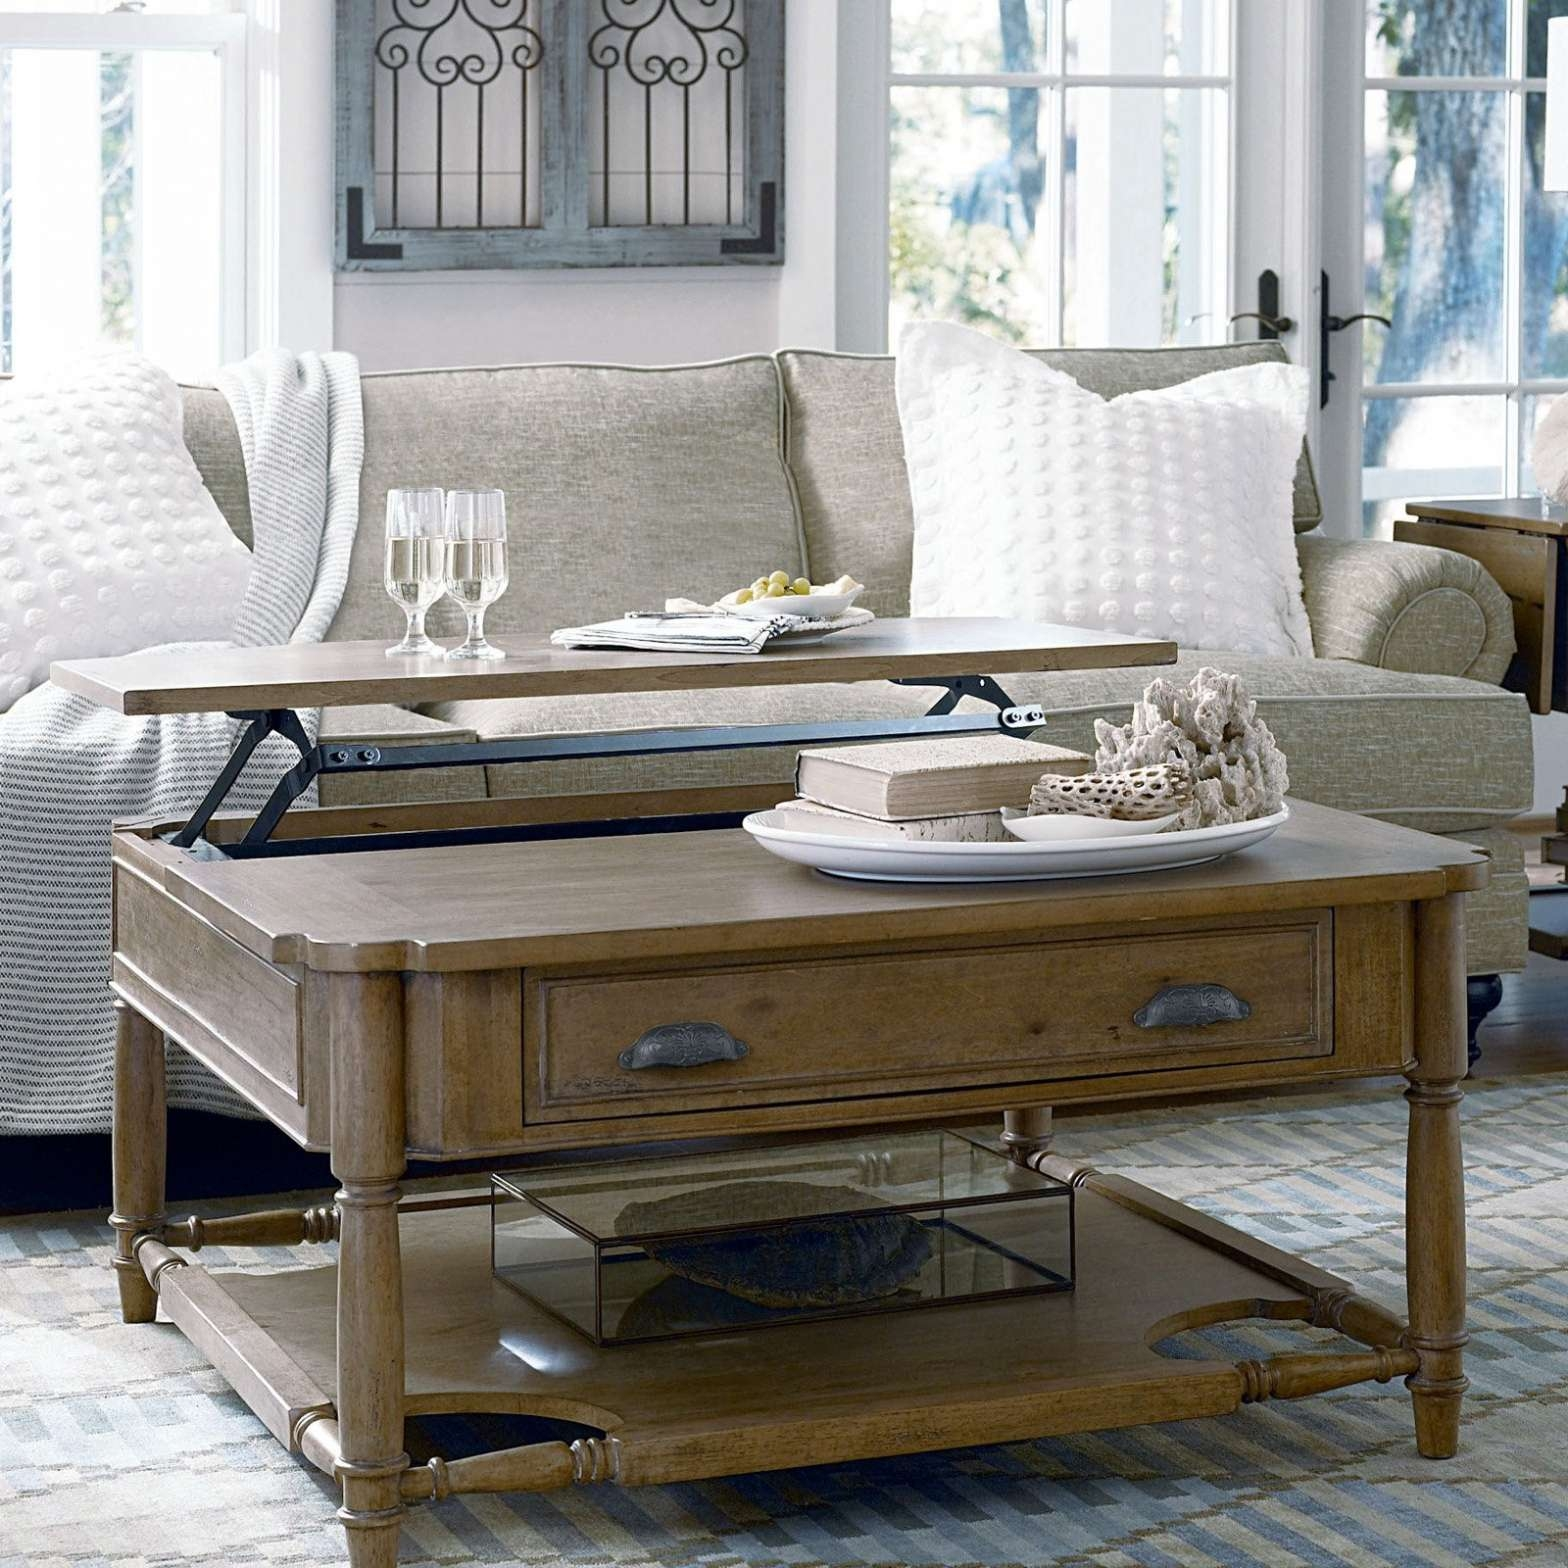 Coffee Tables : Furniture Paula Deen Coffee Table Designs Dark In Most Up To Date Extra Large Low Coffee Tables (View 13 of 20)